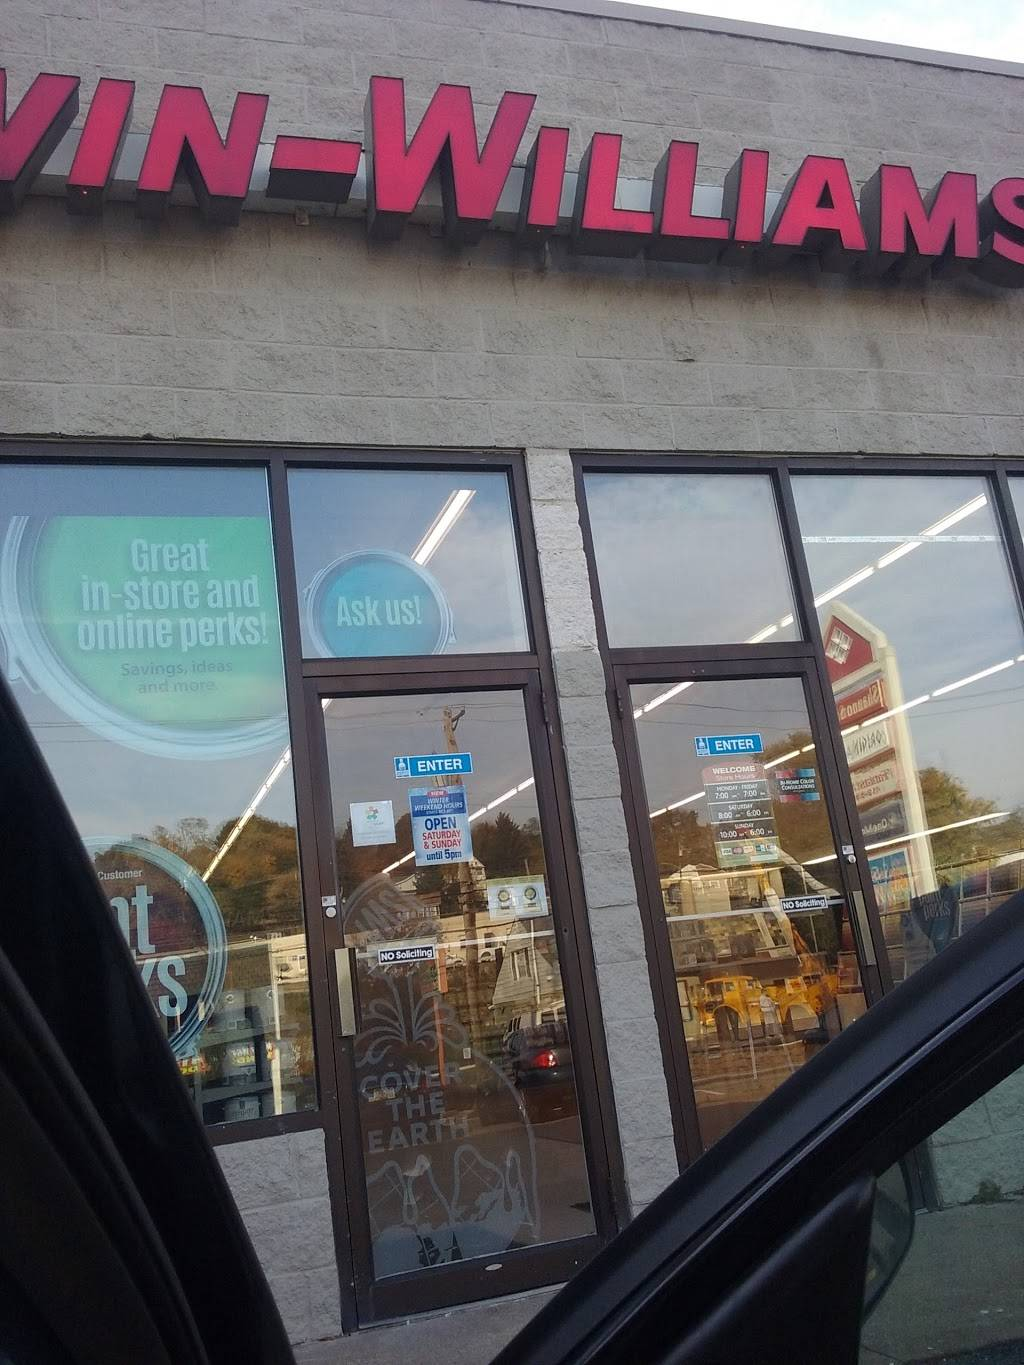 Sherwin-Williams Paint Store - home goods store  | Photo 4 of 4 | Address: 3603 Library Rd, Pittsburgh, PA 15234, USA | Phone: (412) 885-1050